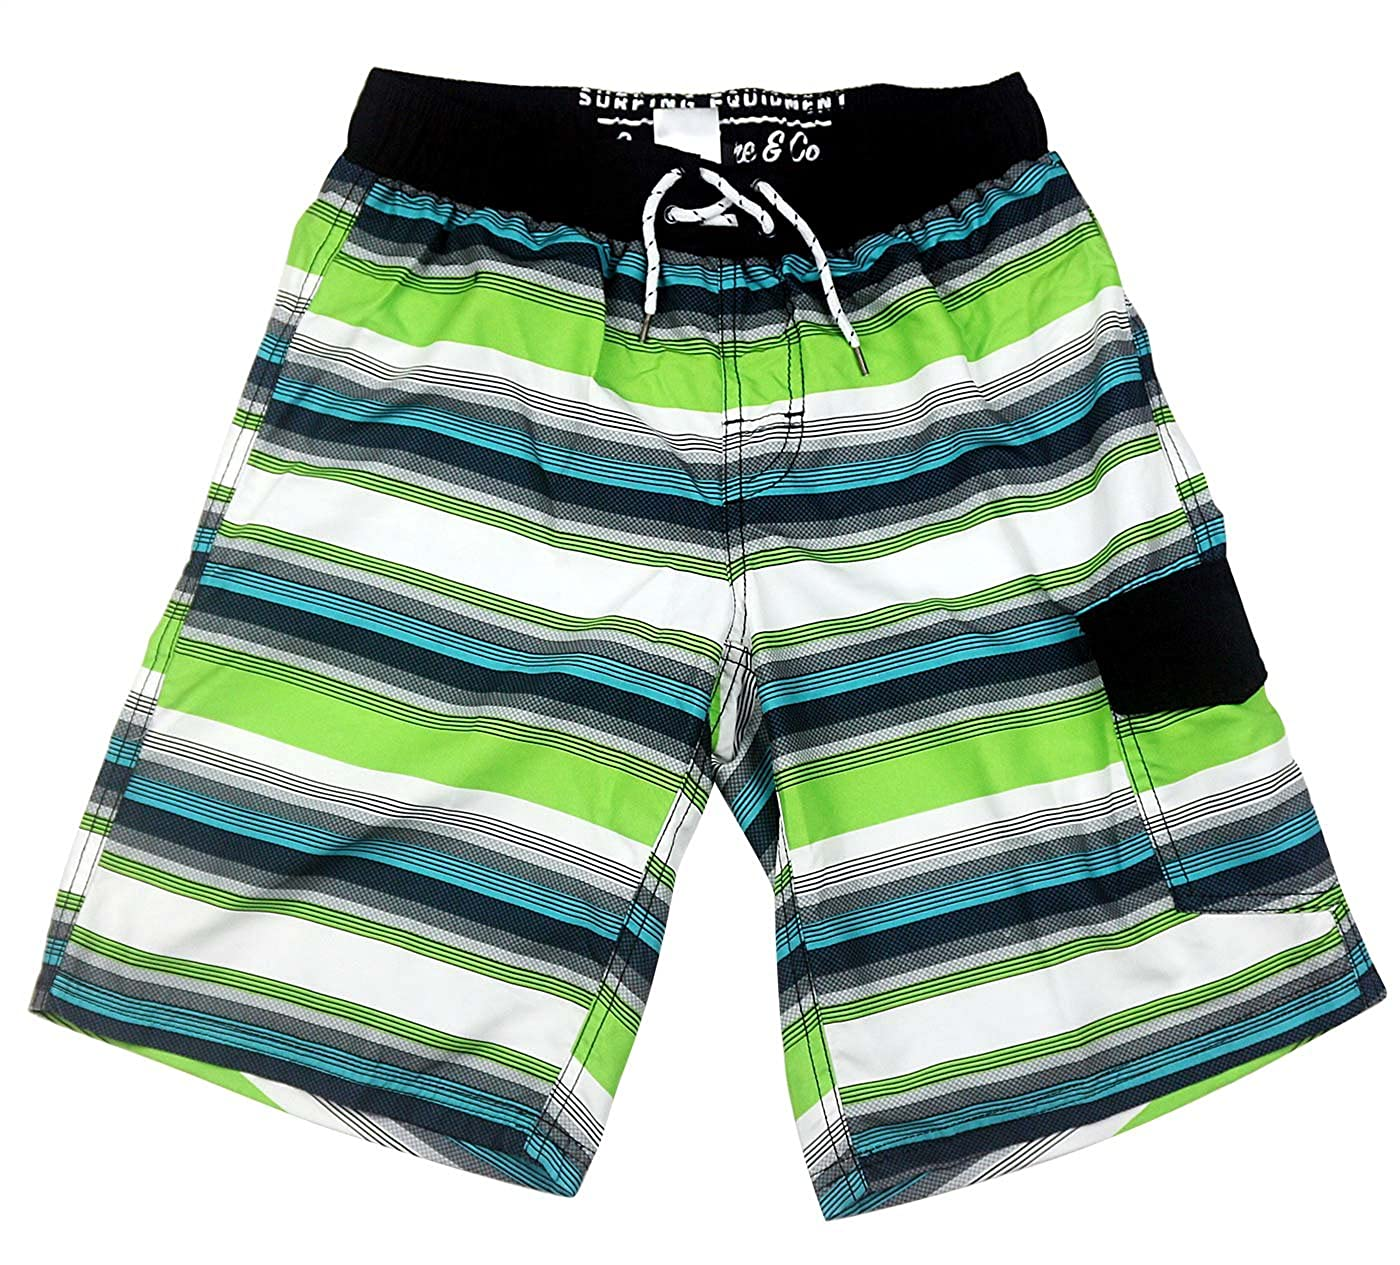 SLGADEN Boys Boardshorts Drawstring Pockets Beach Green Stripe Swim Trunk 7-14T